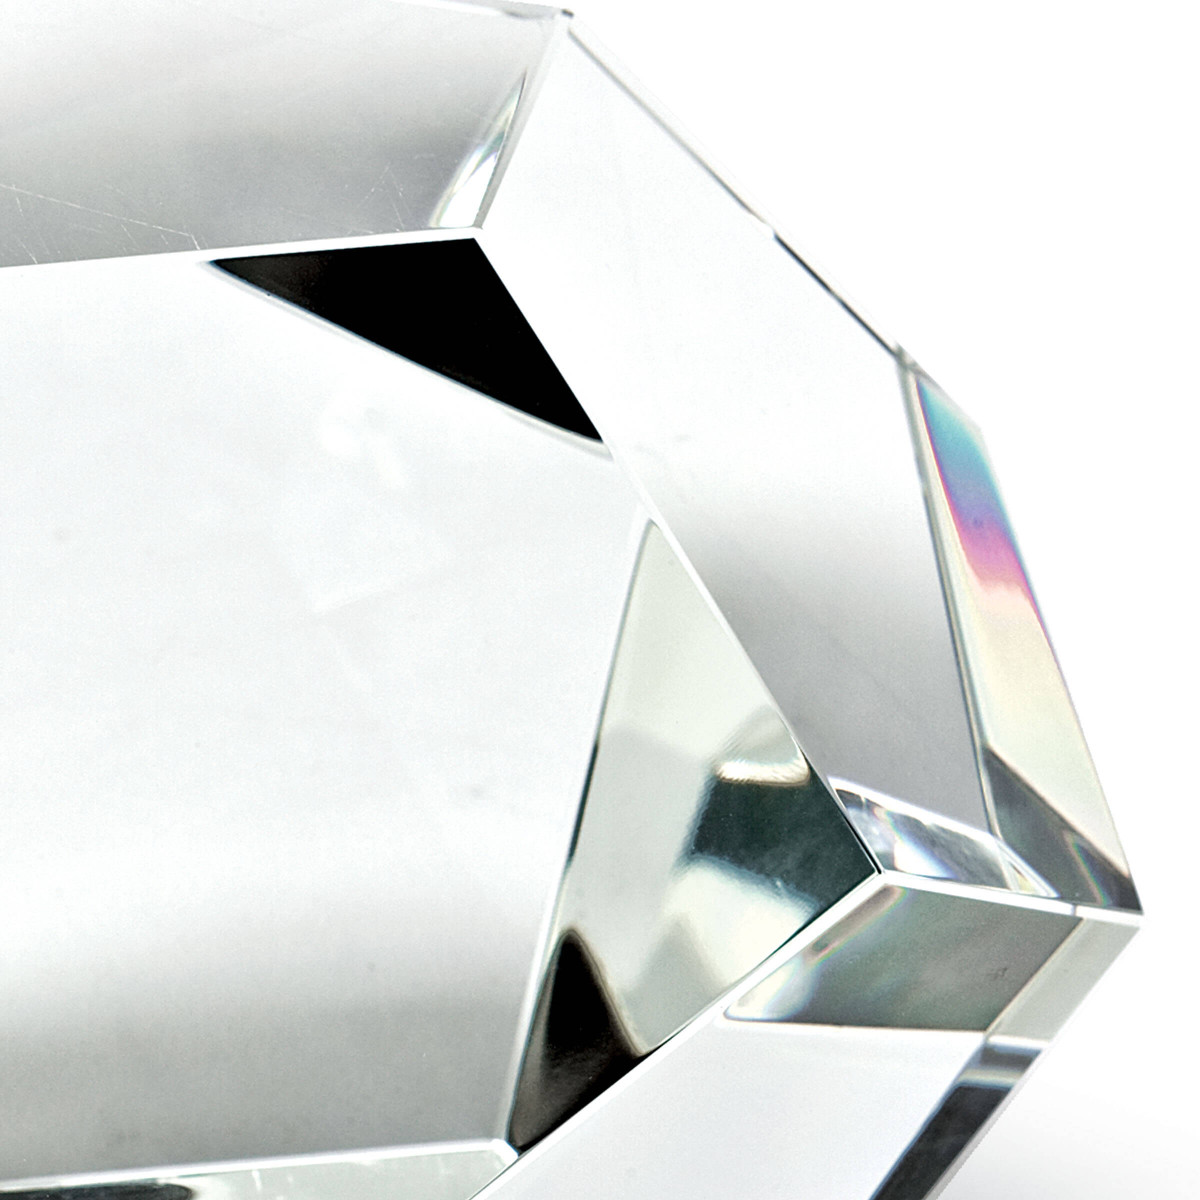 Fonda Facet Crystal Objects | No. 1